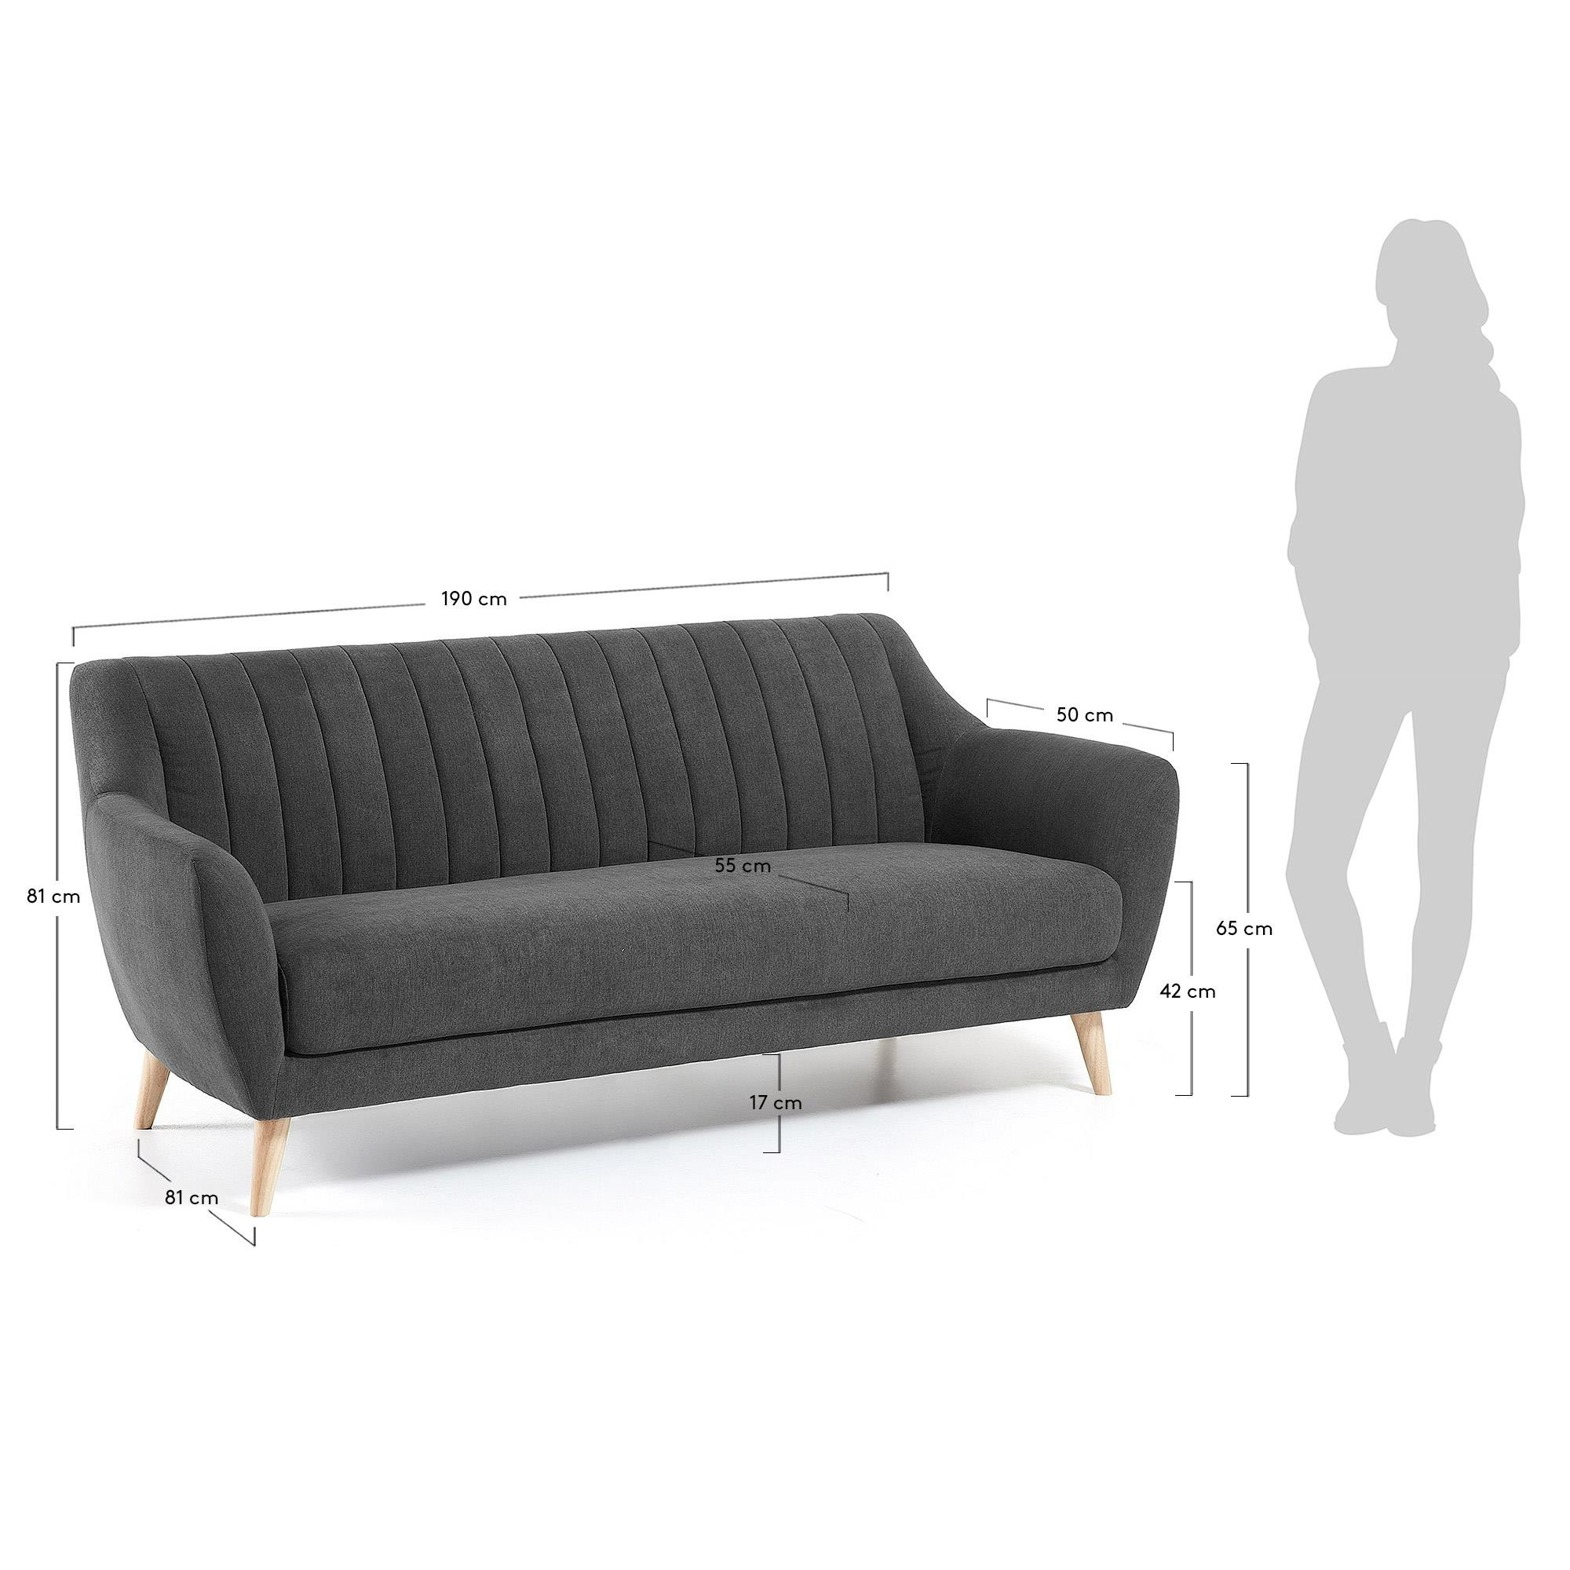 FRE Sofa 3 seaterl wooden legs, fabric dark gray